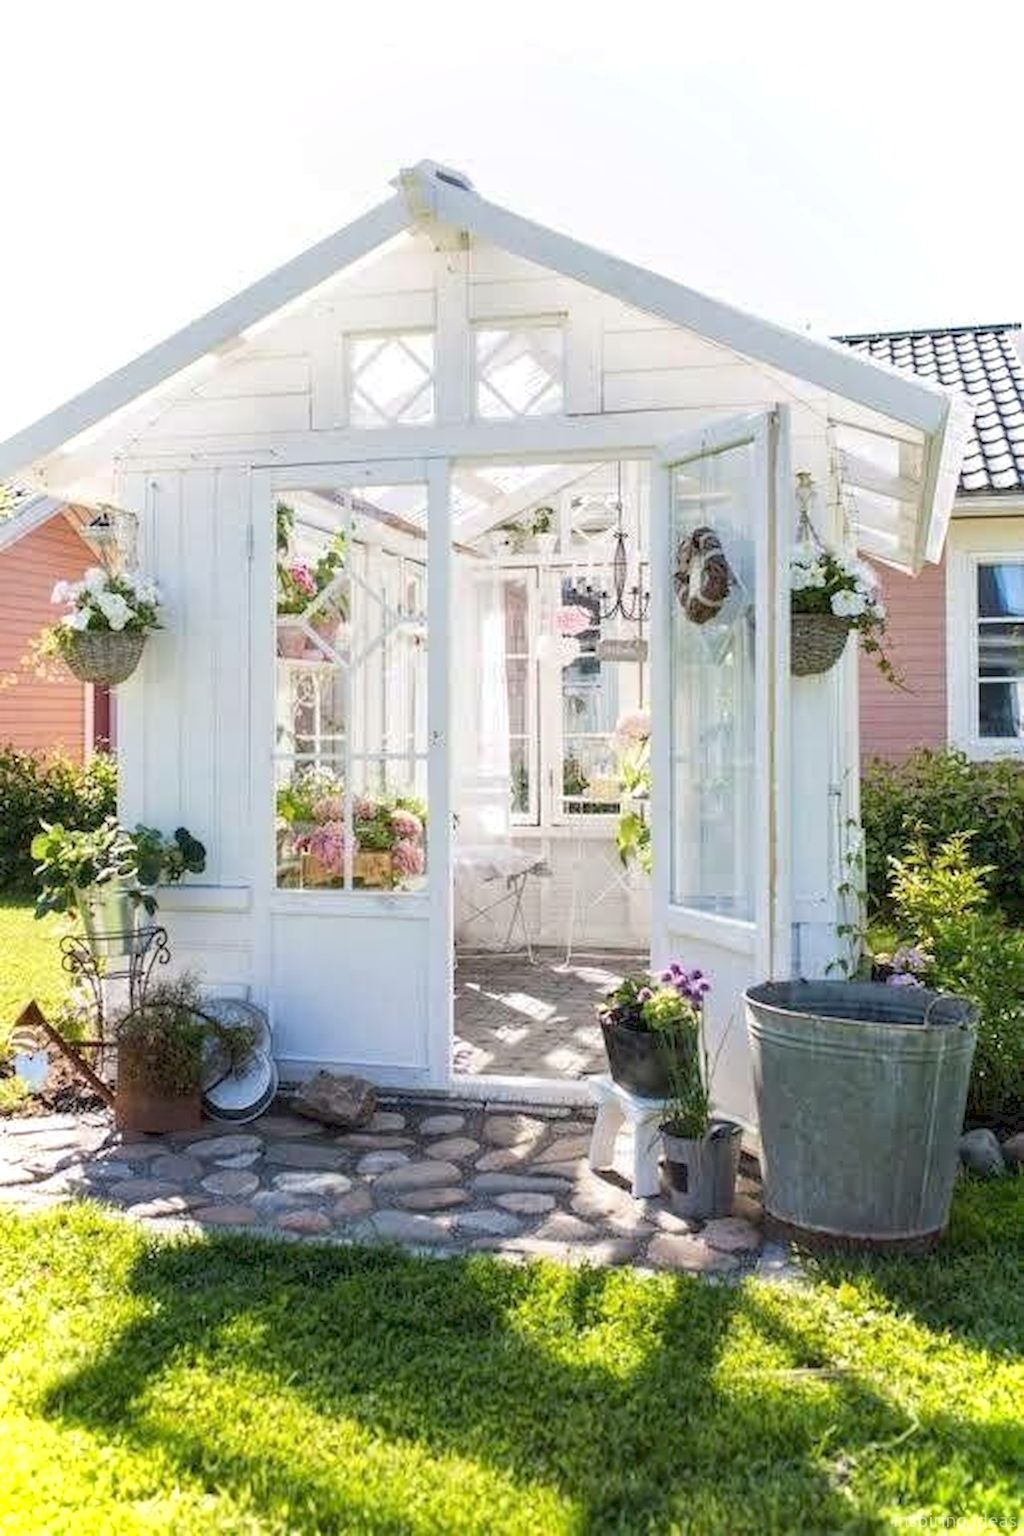 45 Affordable Garden Shed Plans Ideas for You | Gardens, Green ...